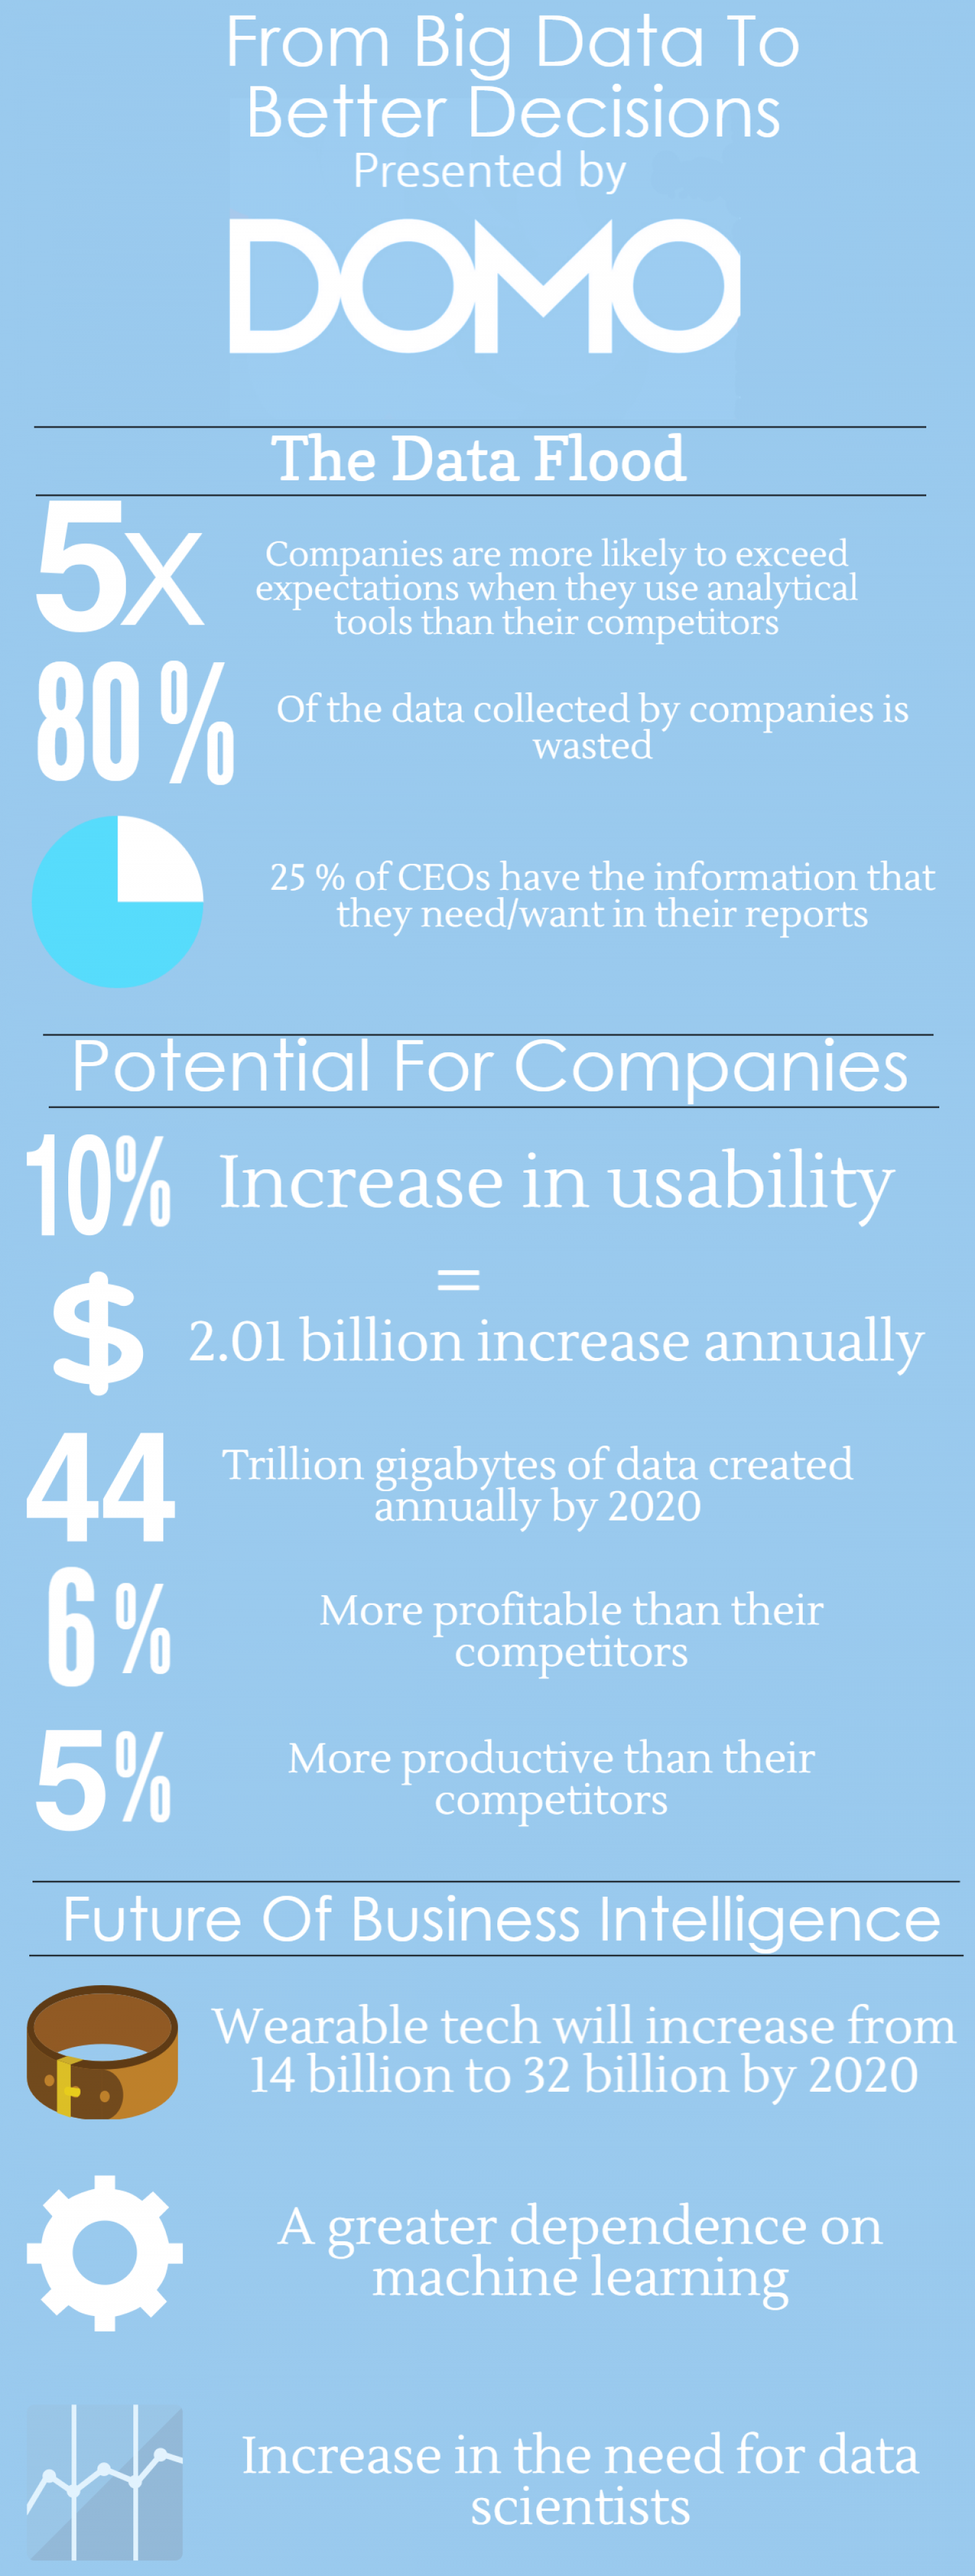 Big Data = Better Decisions Infographic